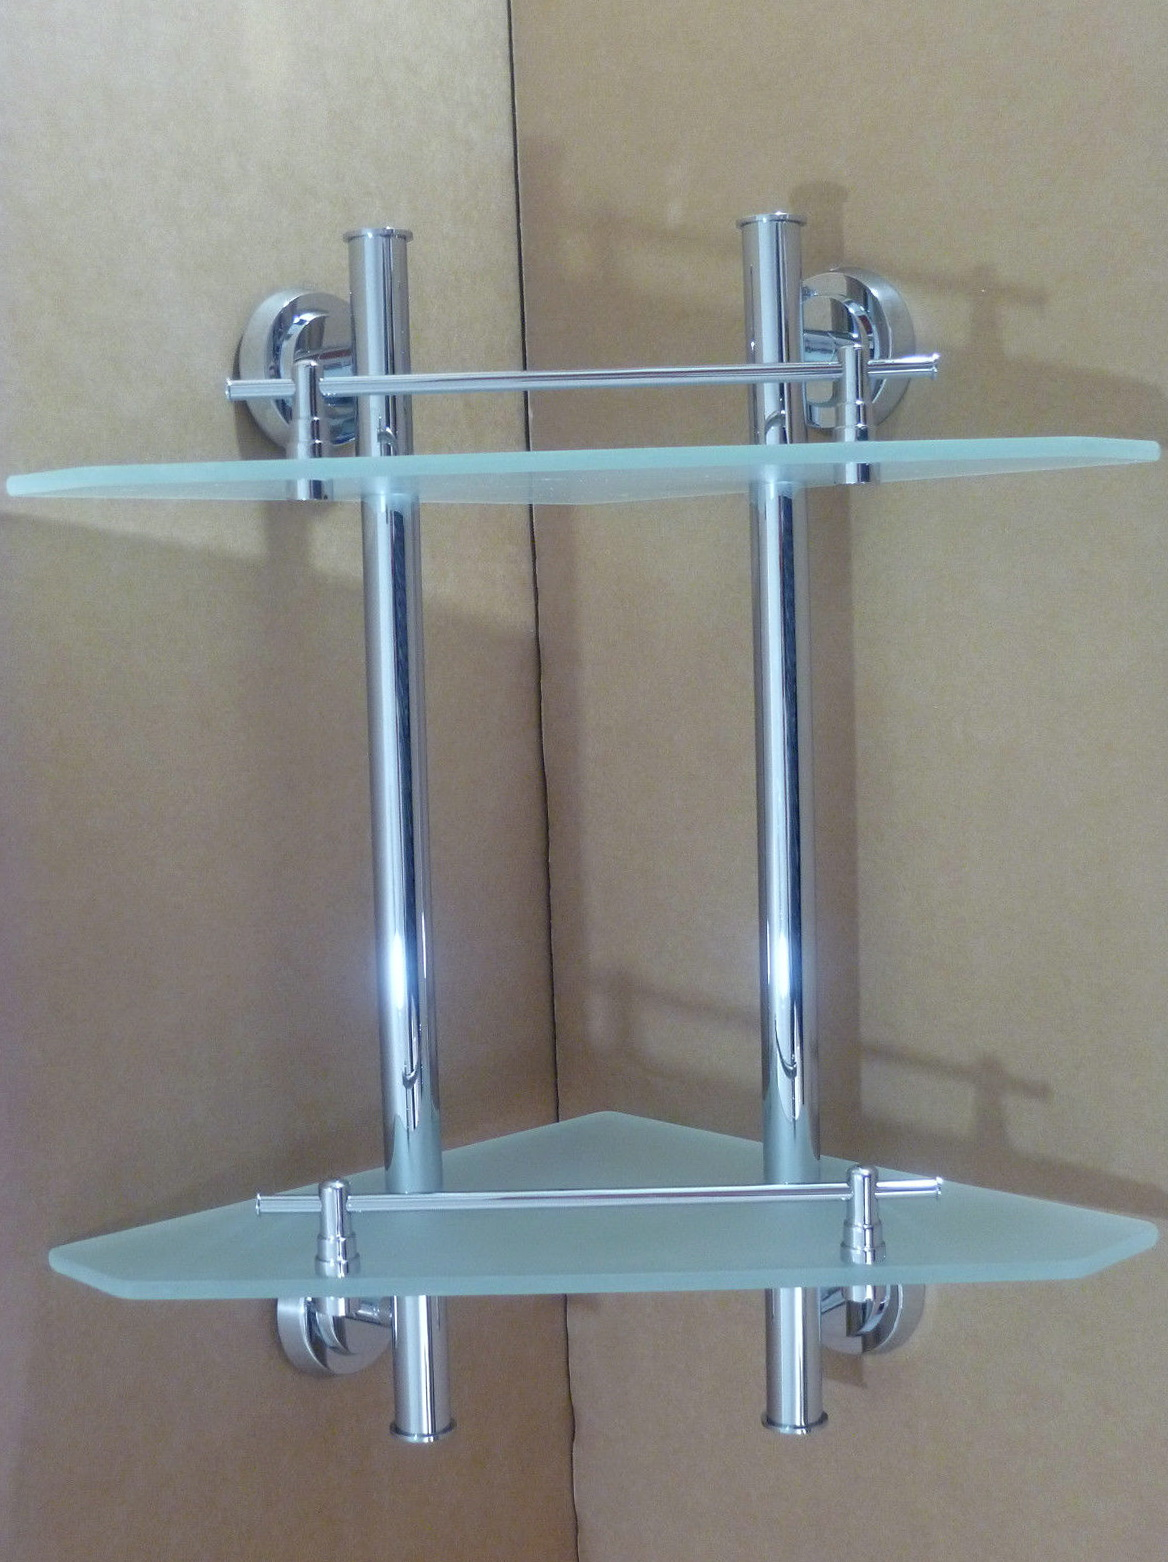 Bathroom Wall Corner Shelf Unit